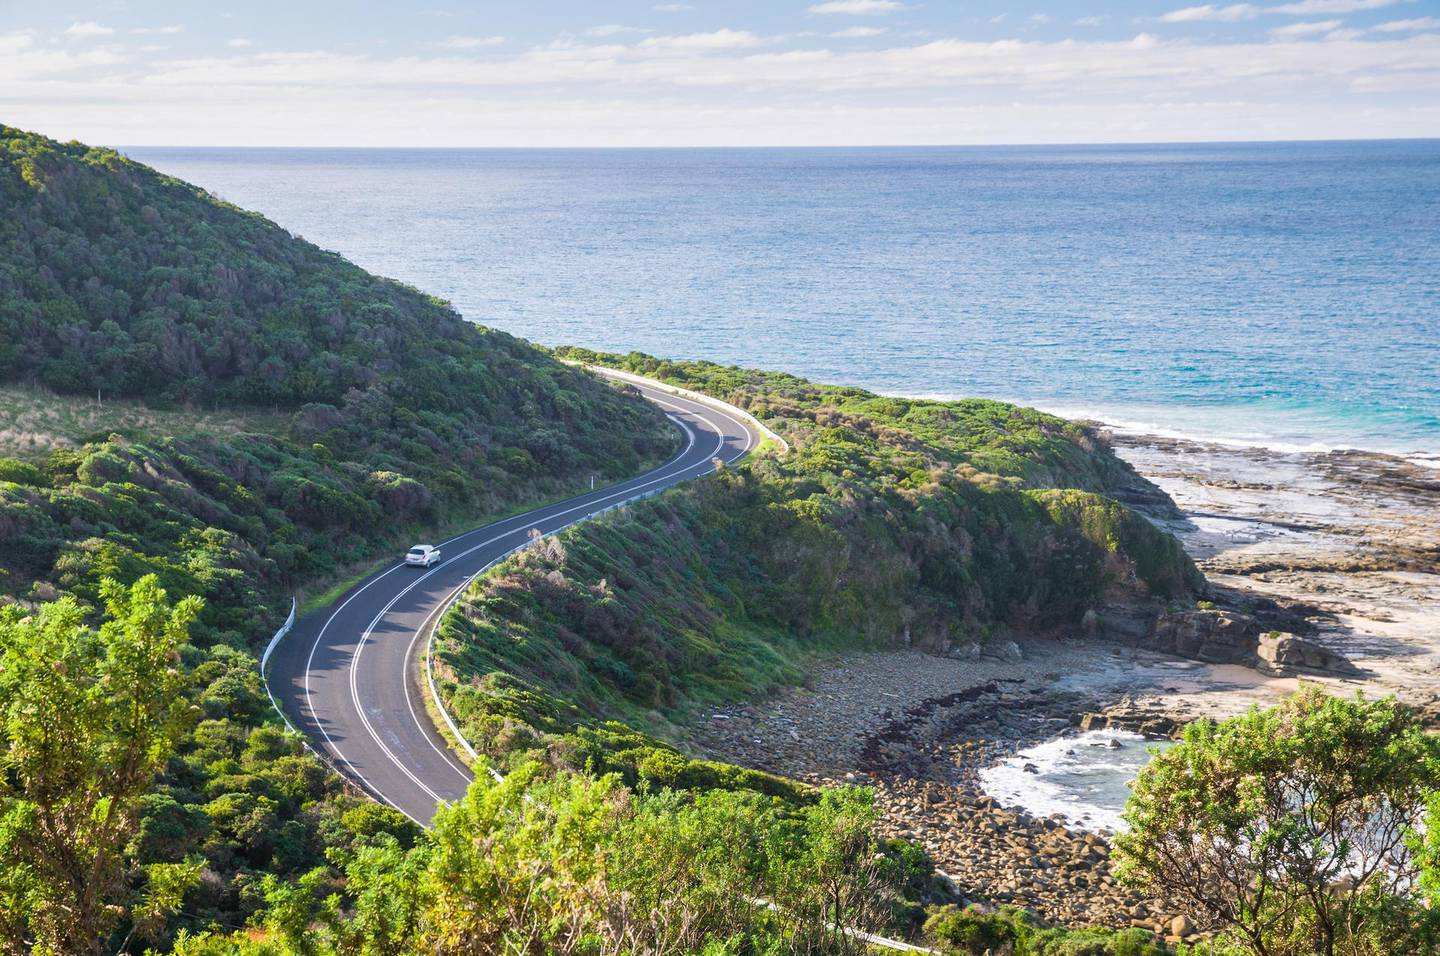 The waters of Bass Strait and a car on the Great Ocean Road, seen here between Kennett River and Skenes Creek, southern Victoria. Getty Images